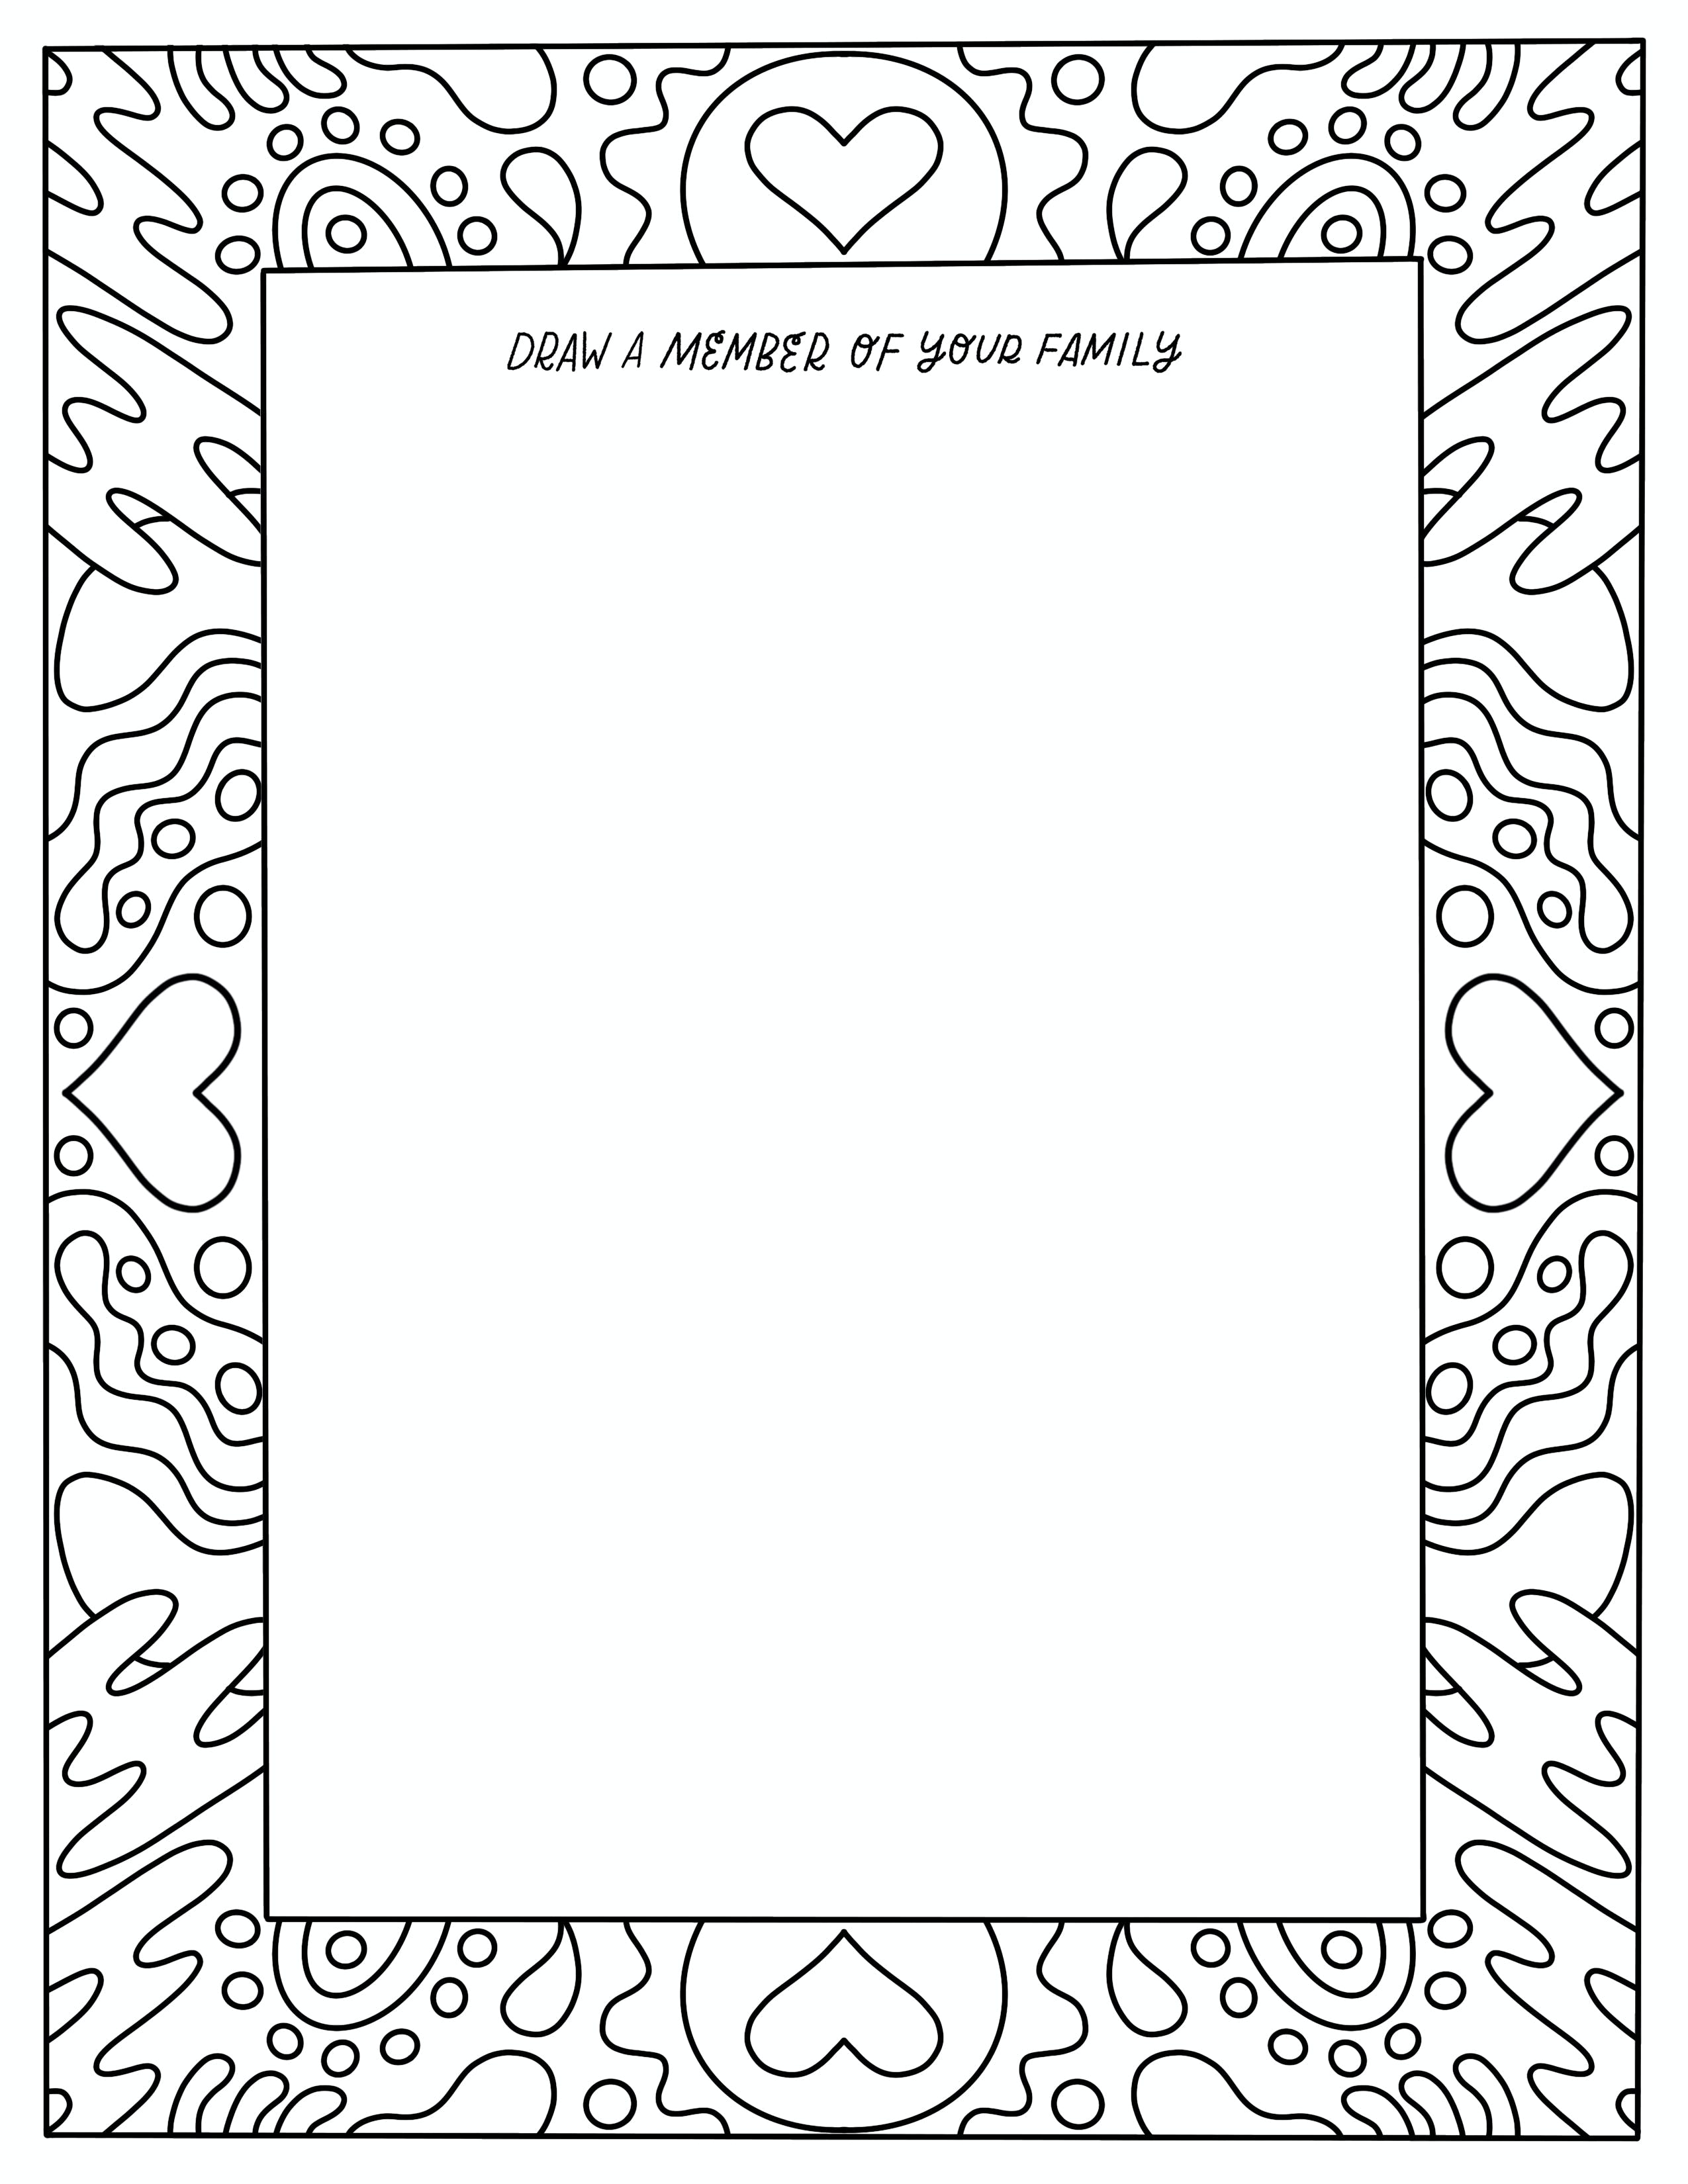 Chatbooks Free Coloring Book Page